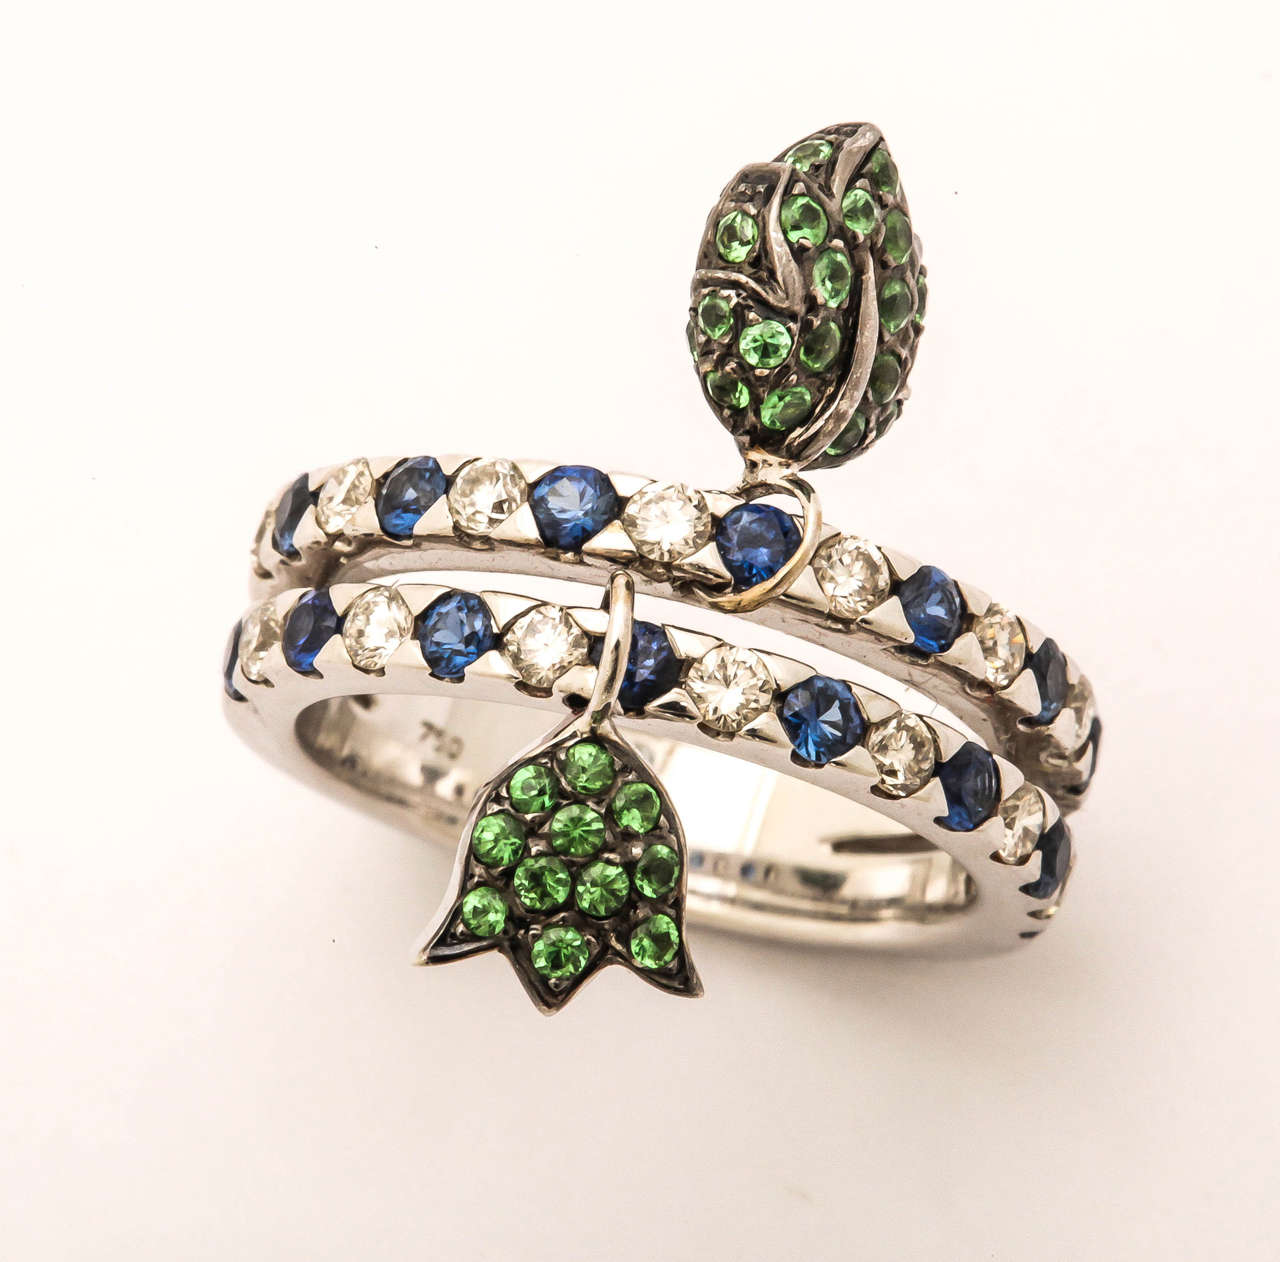 unique ring with movable green garnet tulip and leaf charms for sale